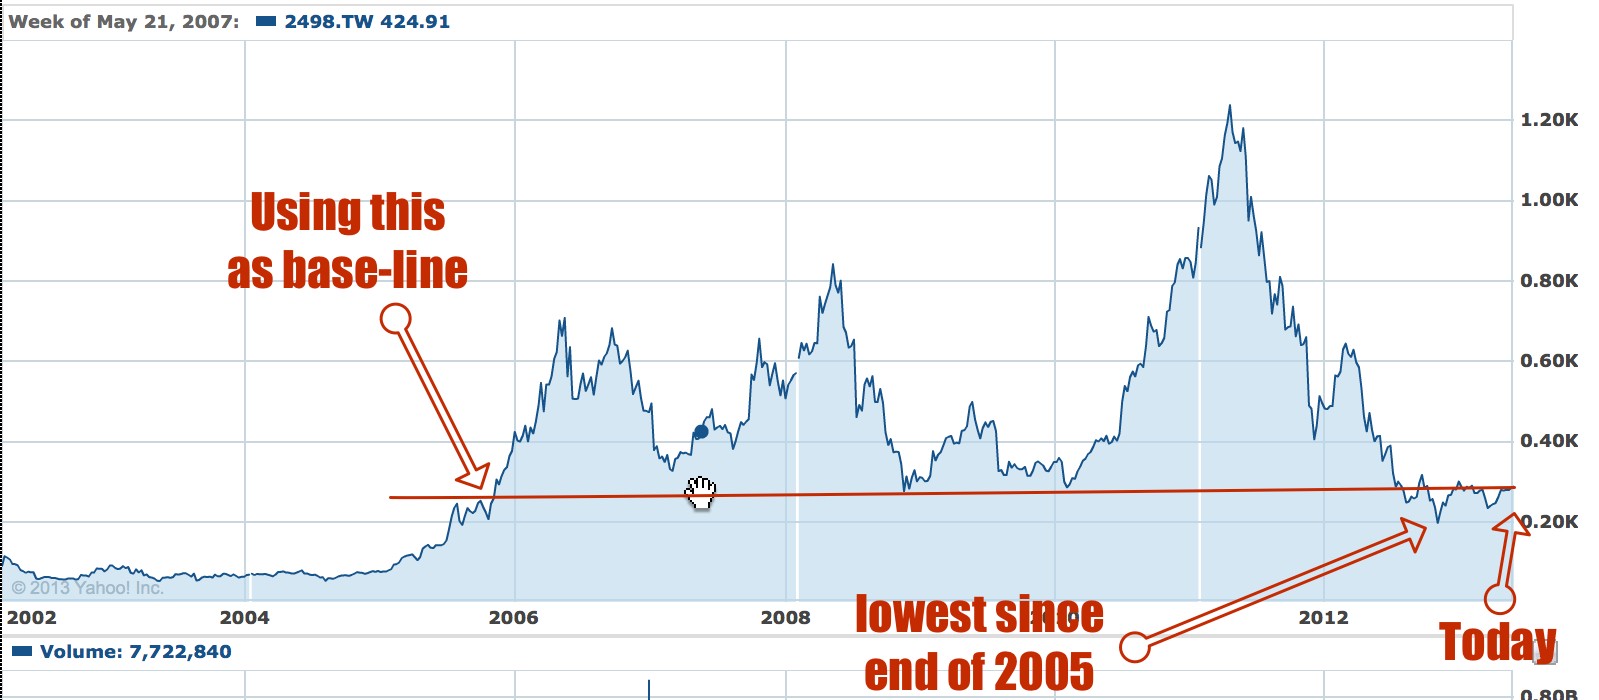 HTC stock price 2005 to 2013